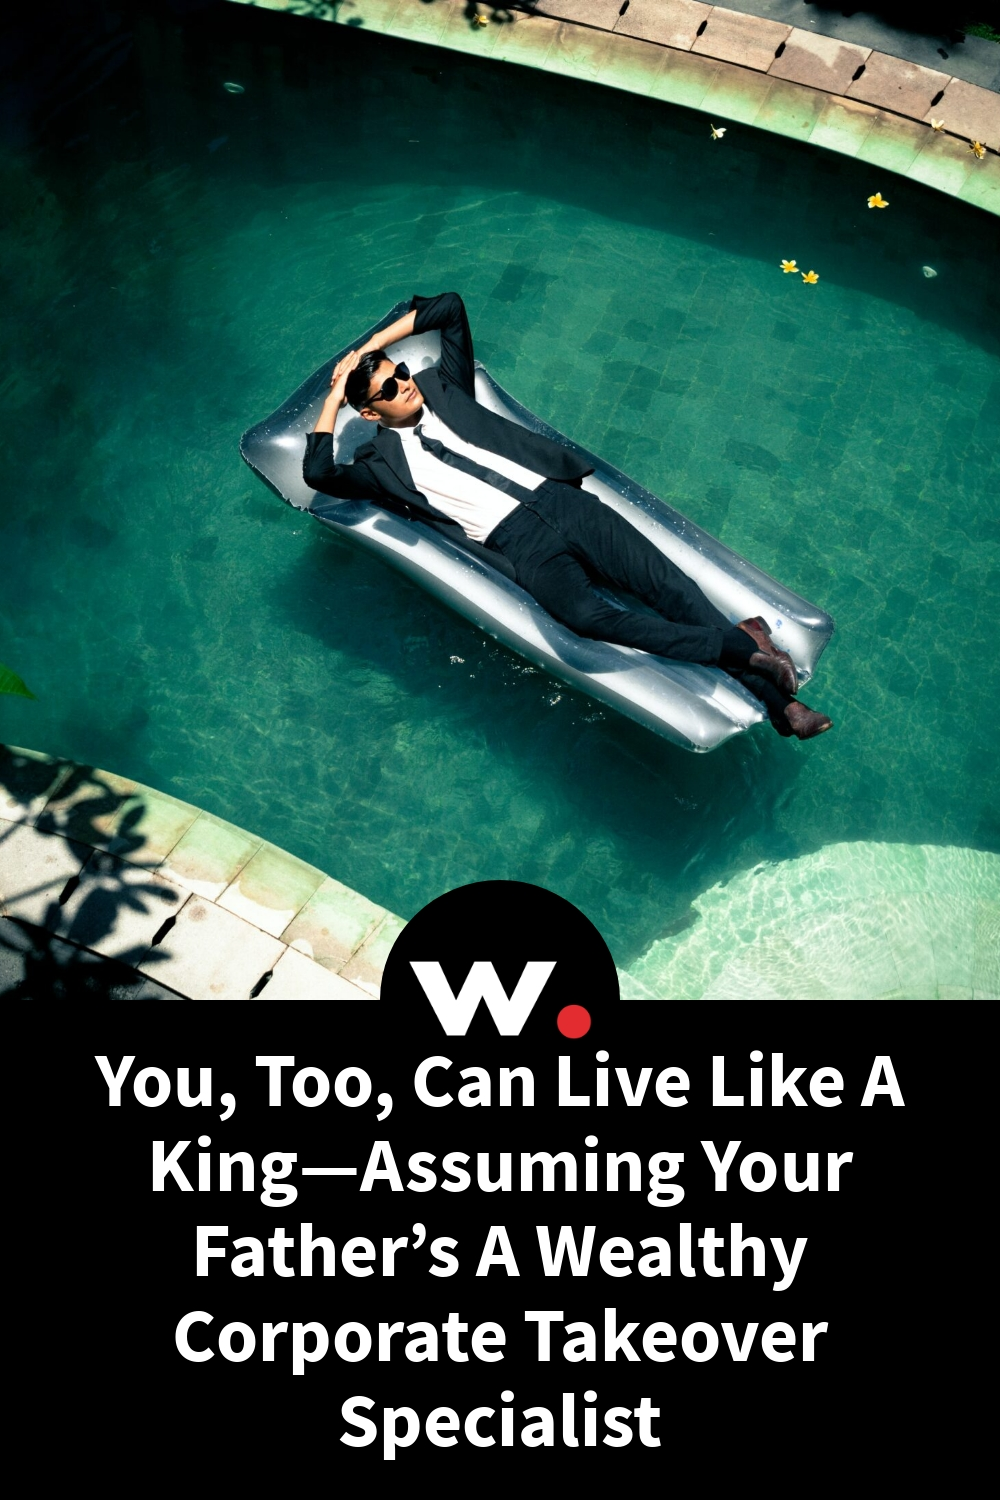 You, Too, Can Live Like A King—Assuming Your Father's A Wealthy Corporate Takeover Specialist